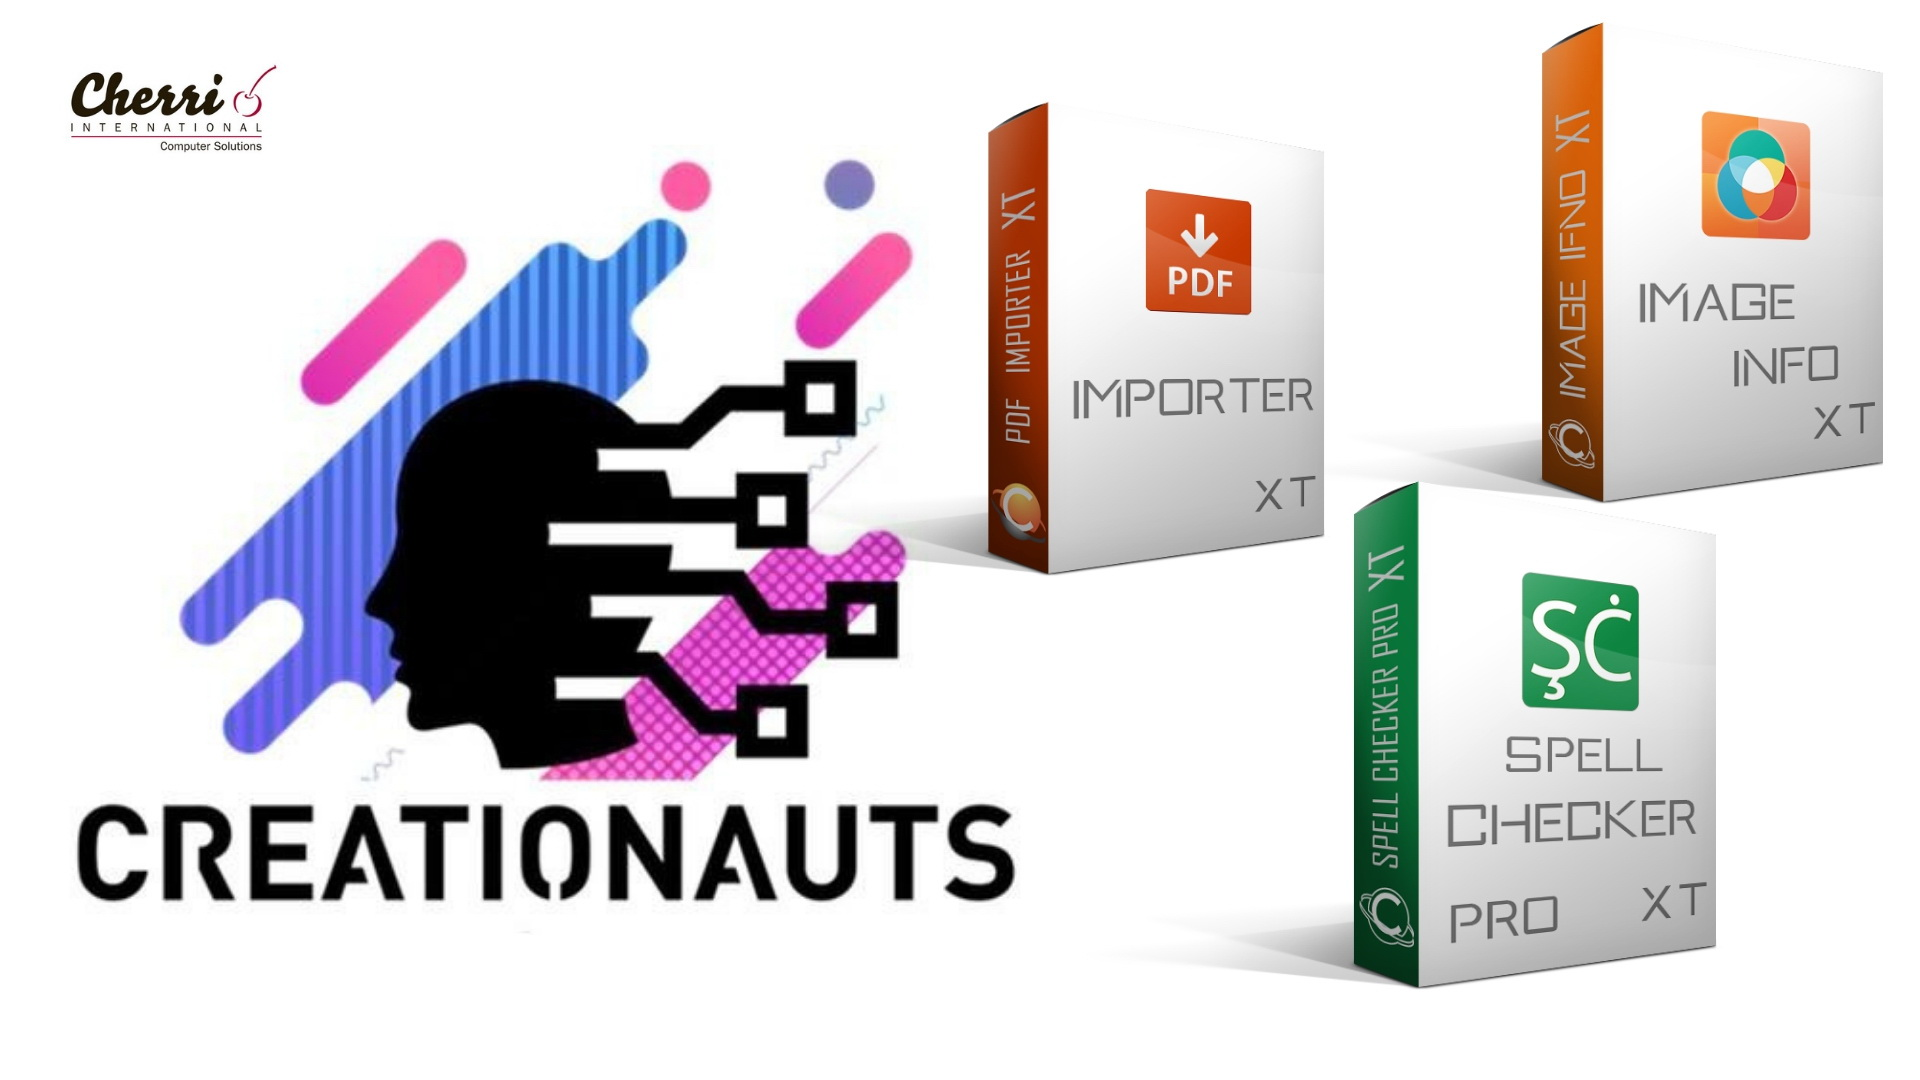 Cherri International are Distributor and Reseller of Creationauts Software